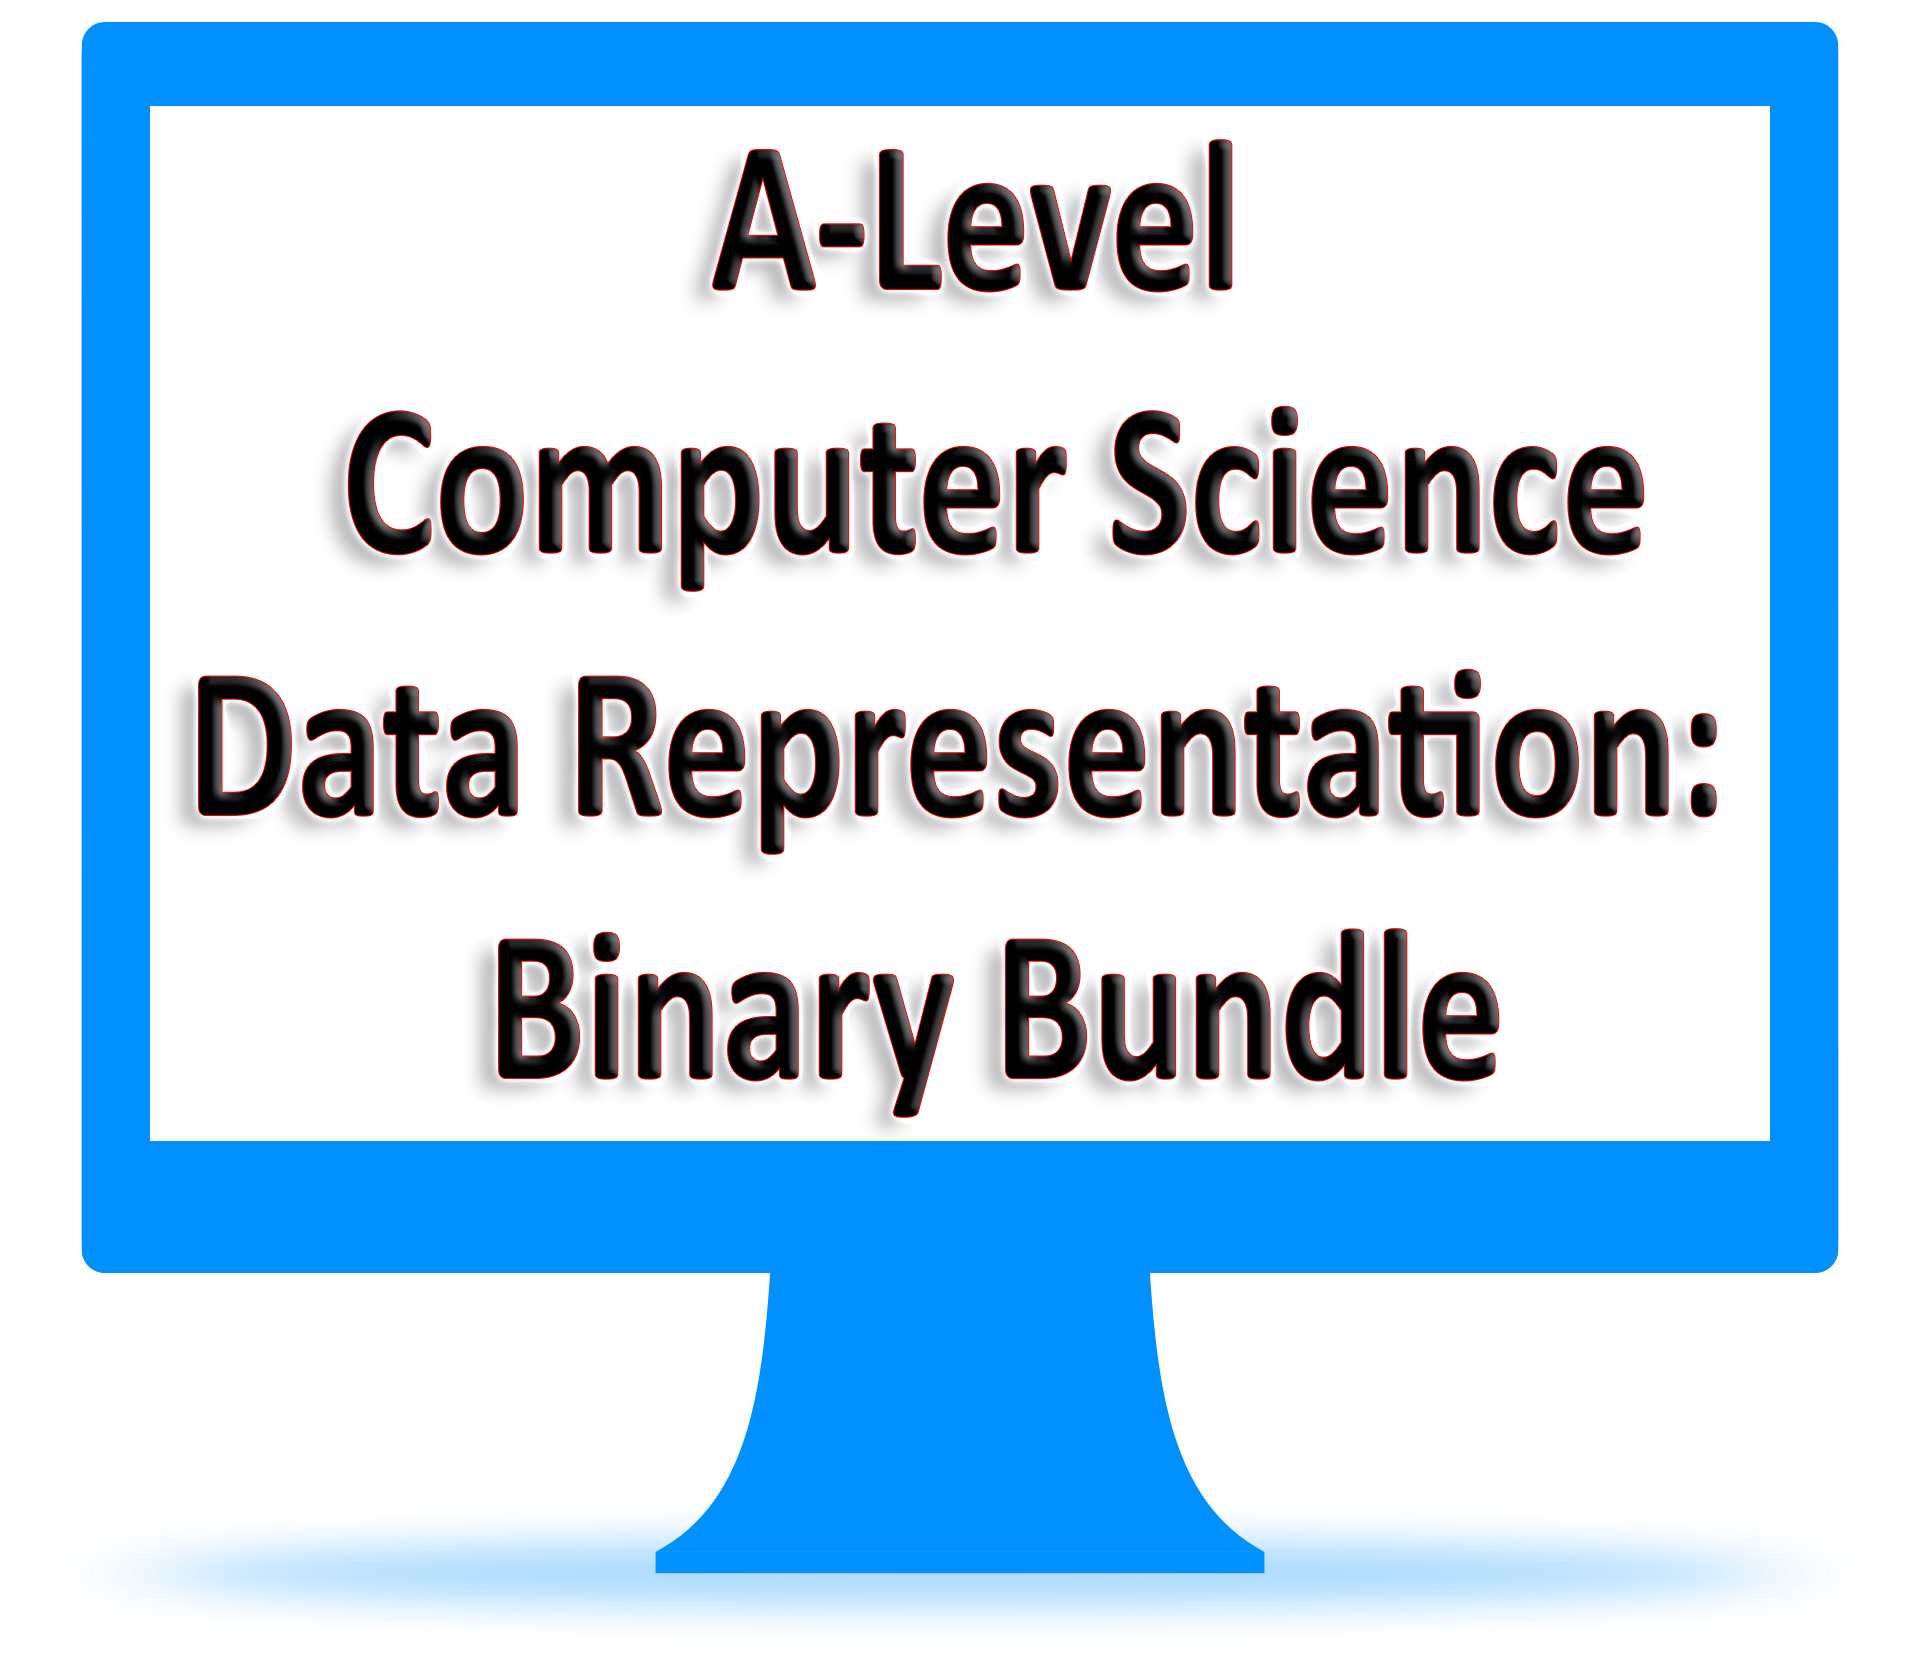 A-Level Computer Science - Data Representation: Binary